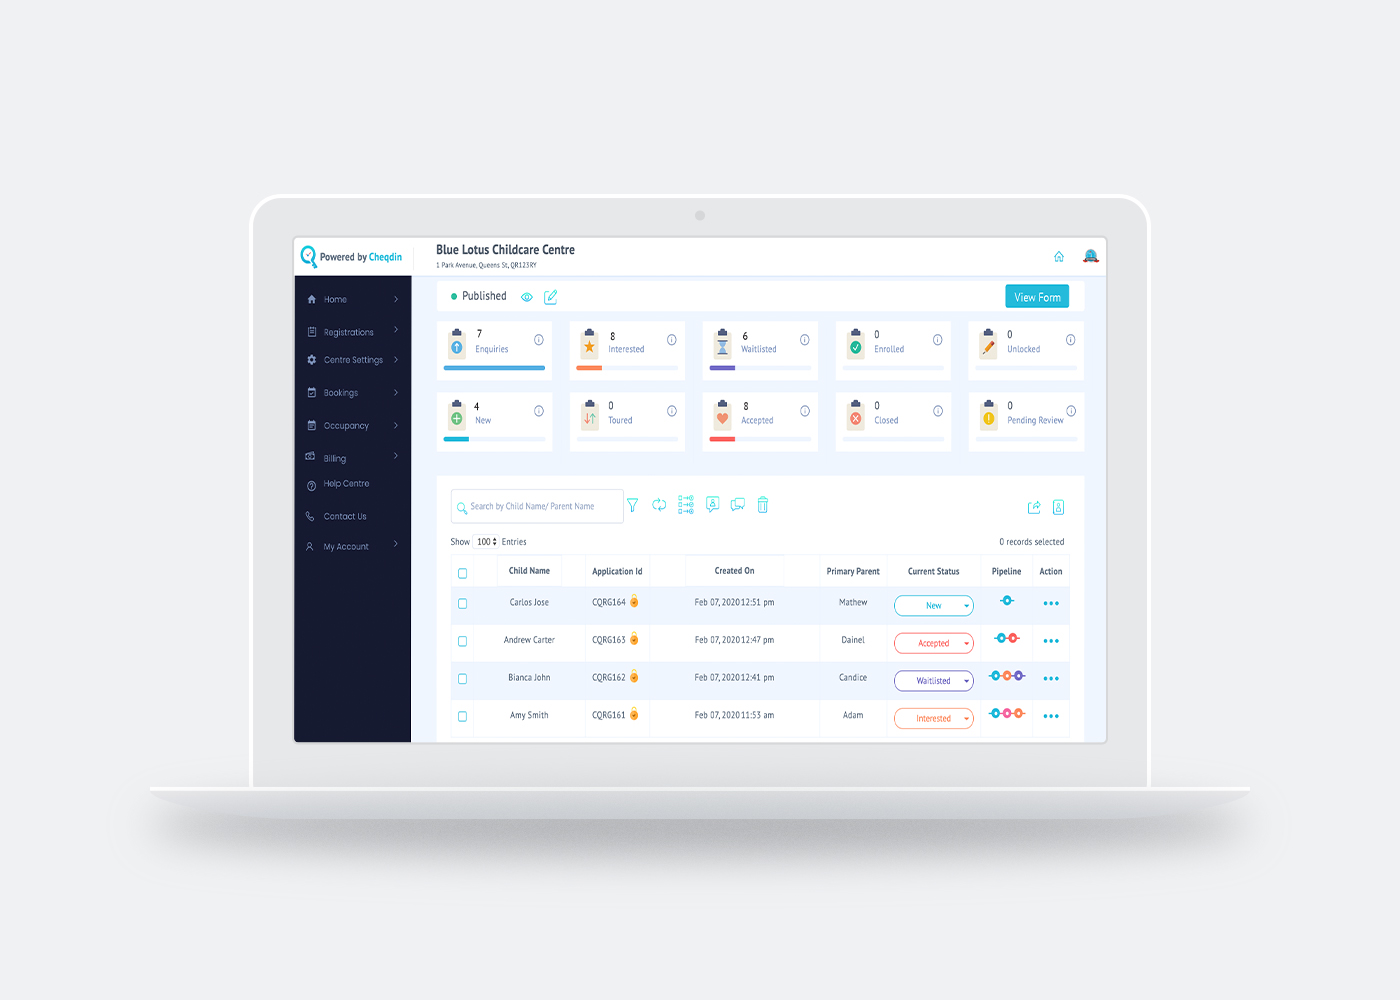 Registrations Dashboard - Share your registrations link on social media or as a button on your website. Manage all registrations and enrollments in one place.